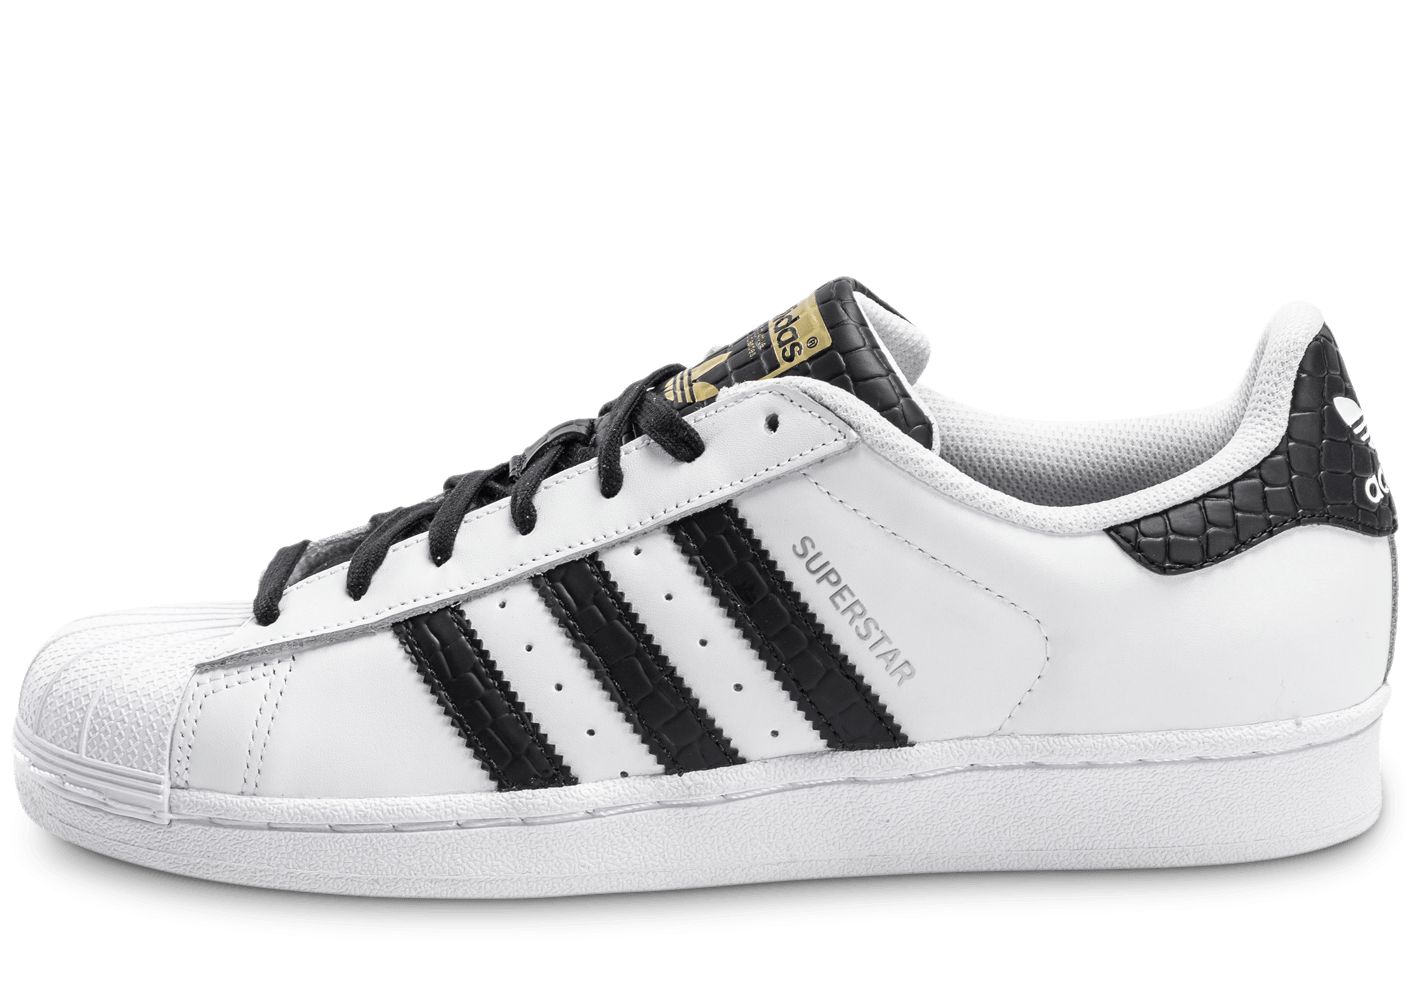 Blanches Blanches Noires Noires Chaussures Blanches Chaussures Adidas Chaussures Adidas 4Lq3jAR5